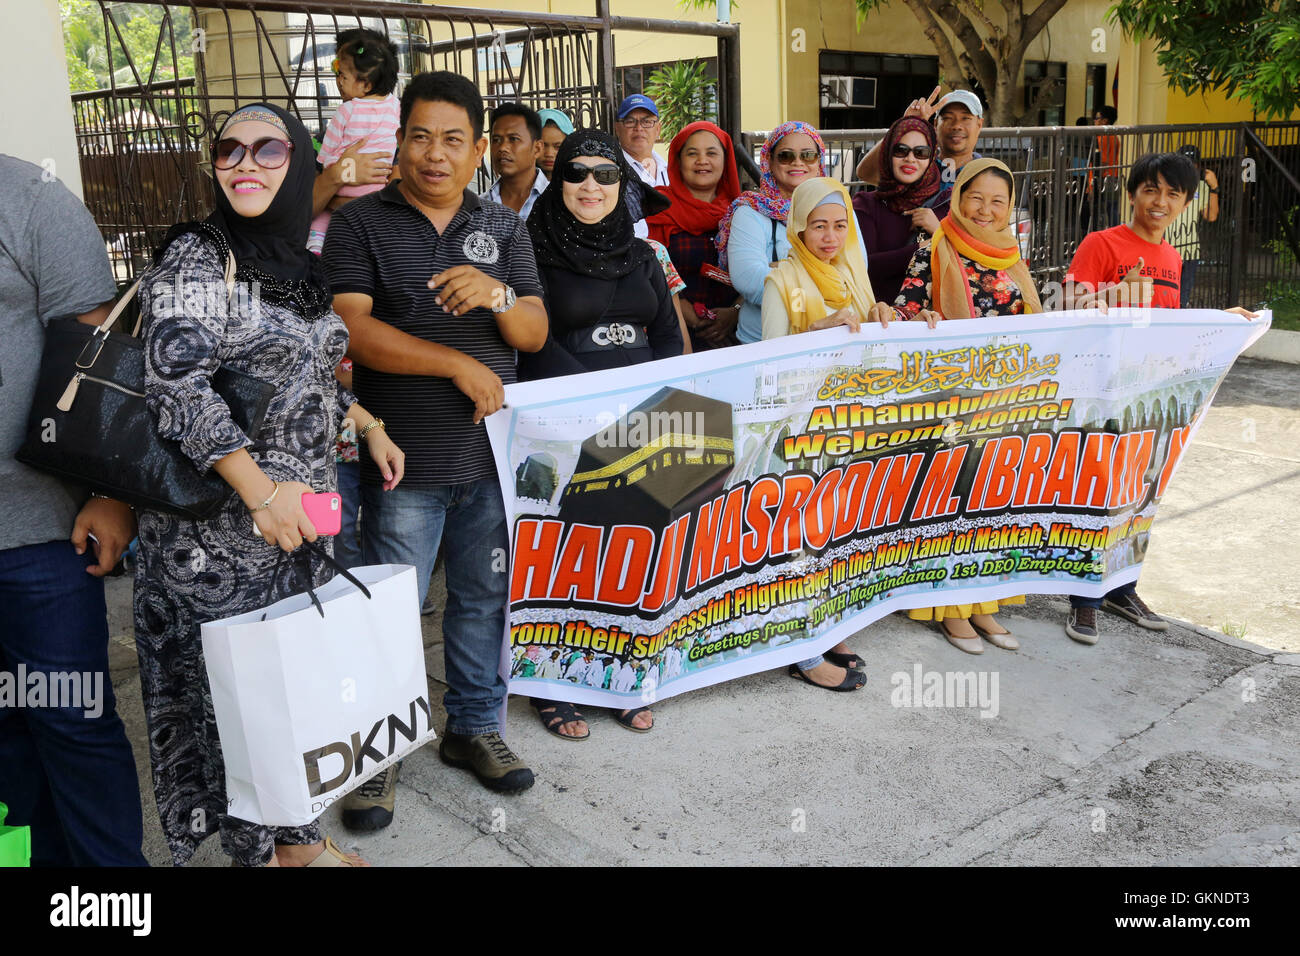 Relatives with a placard greet returnees from their pilgrimage to Mecca at the airport in Cotabato, Mindanao, Philippines - Stock Image